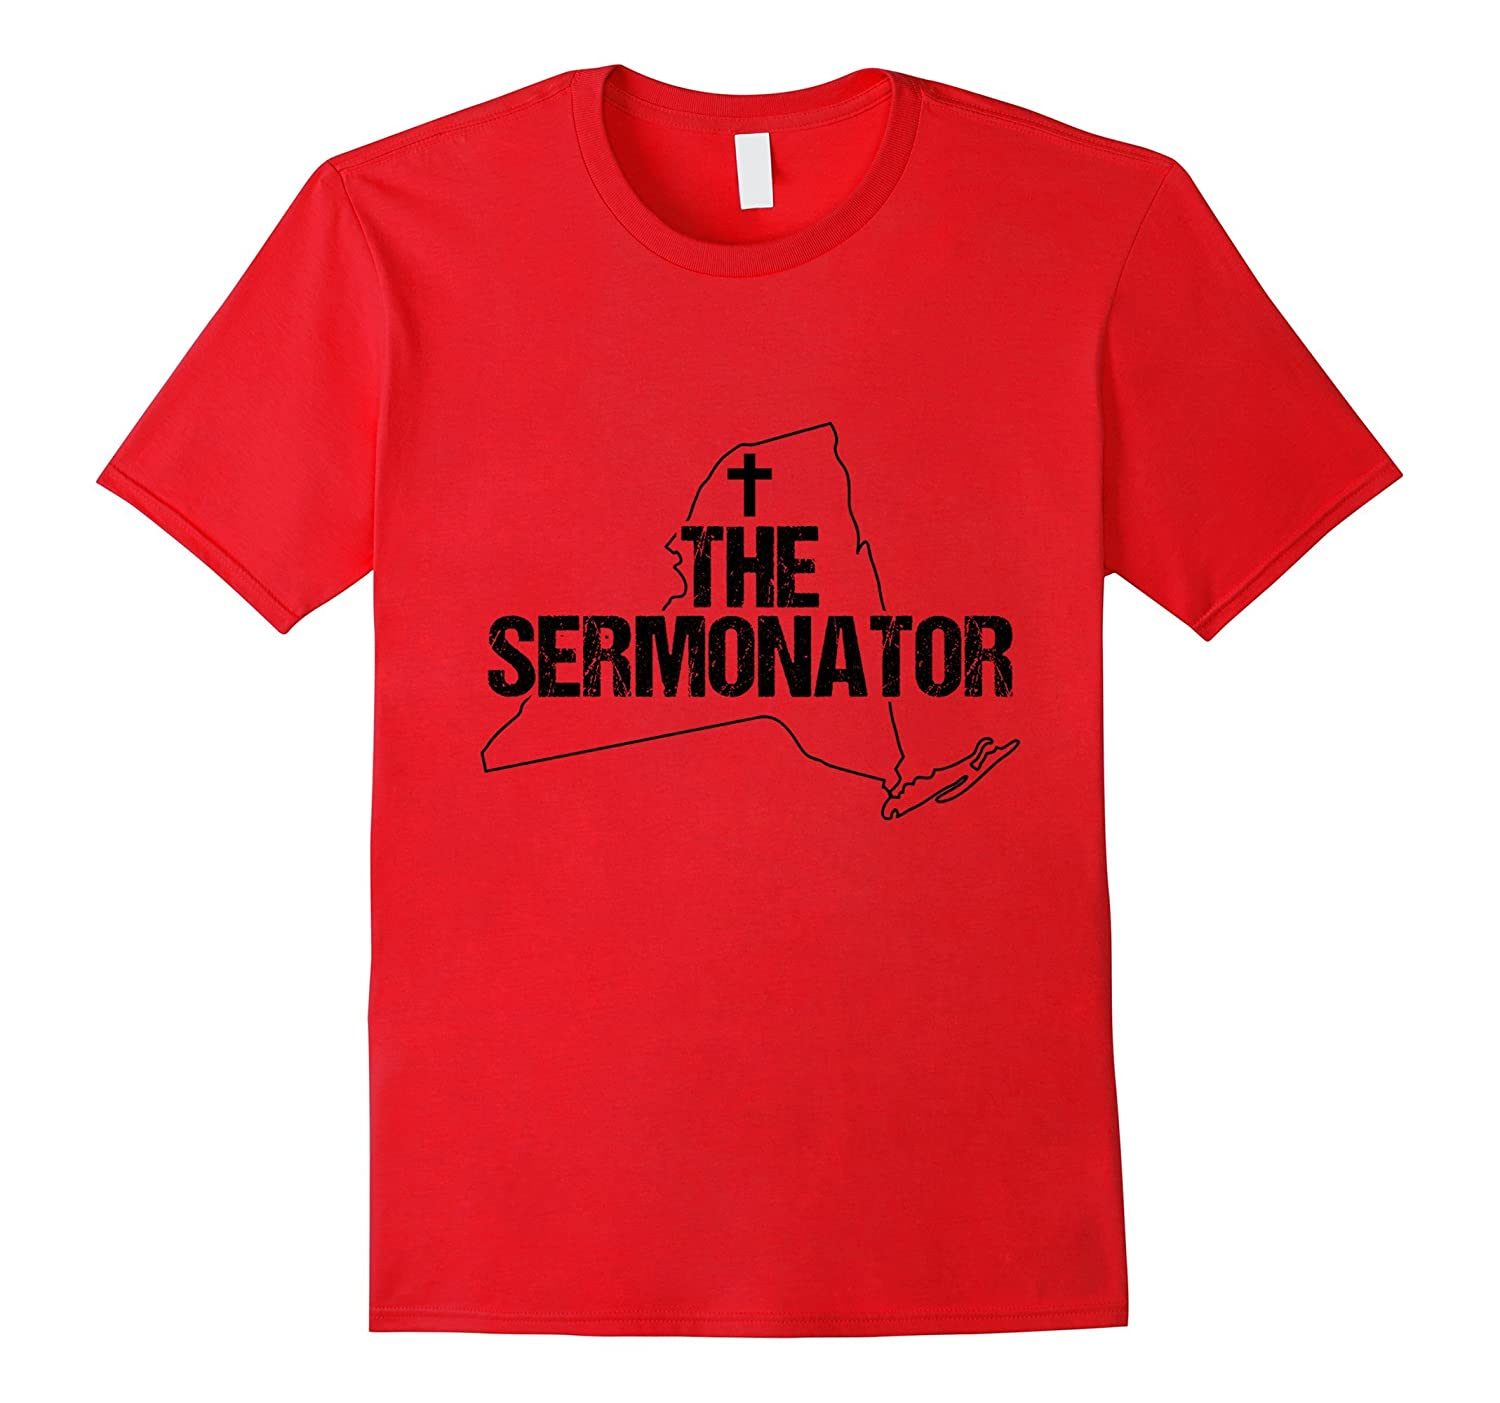 New York Sermonator Minister Preacher Priest Funny T-Shirt 2-TD